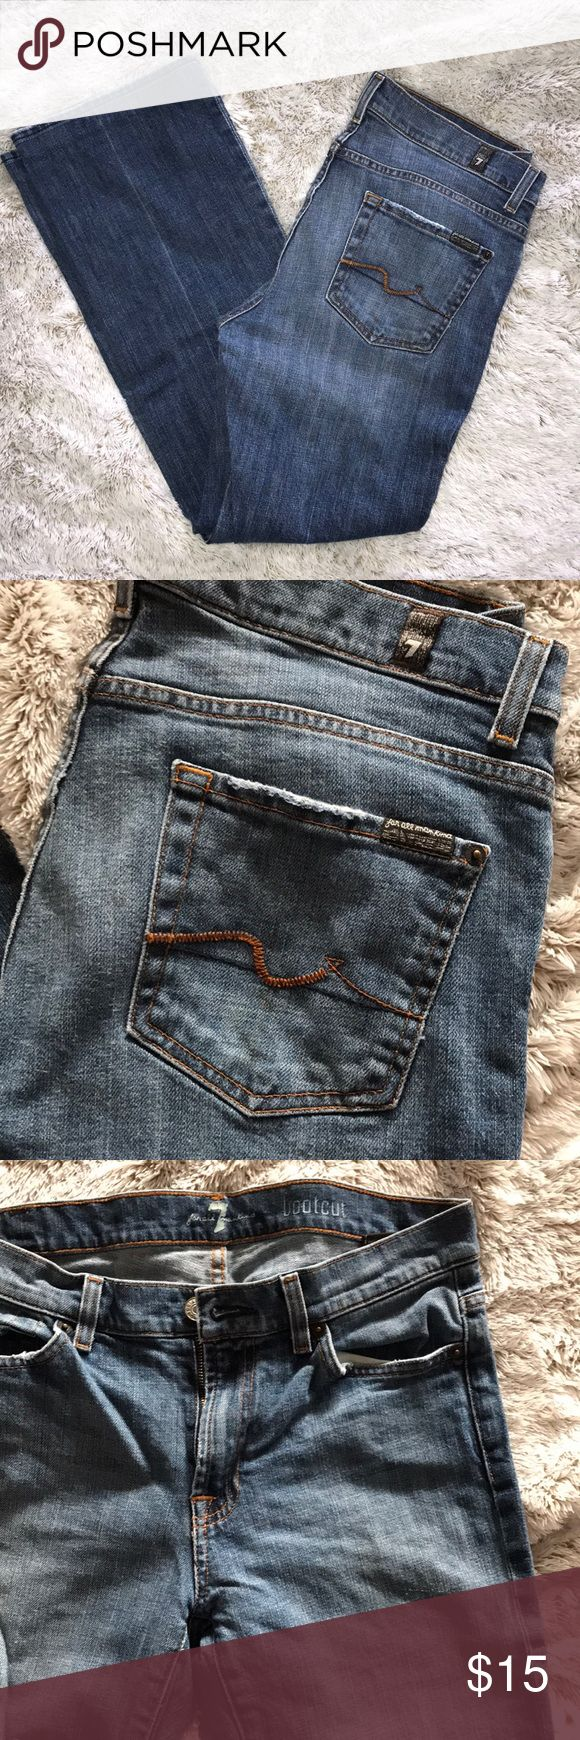 "Men's 7 For All Mankind Bootcut Jeans Pre-loved but in good condition. All fraying in pockets and hem are ""original"" and came with the jeans. Length altered down to 28"". 7 For All Mankind Jeans Bootcut #mensjeansbootcut"